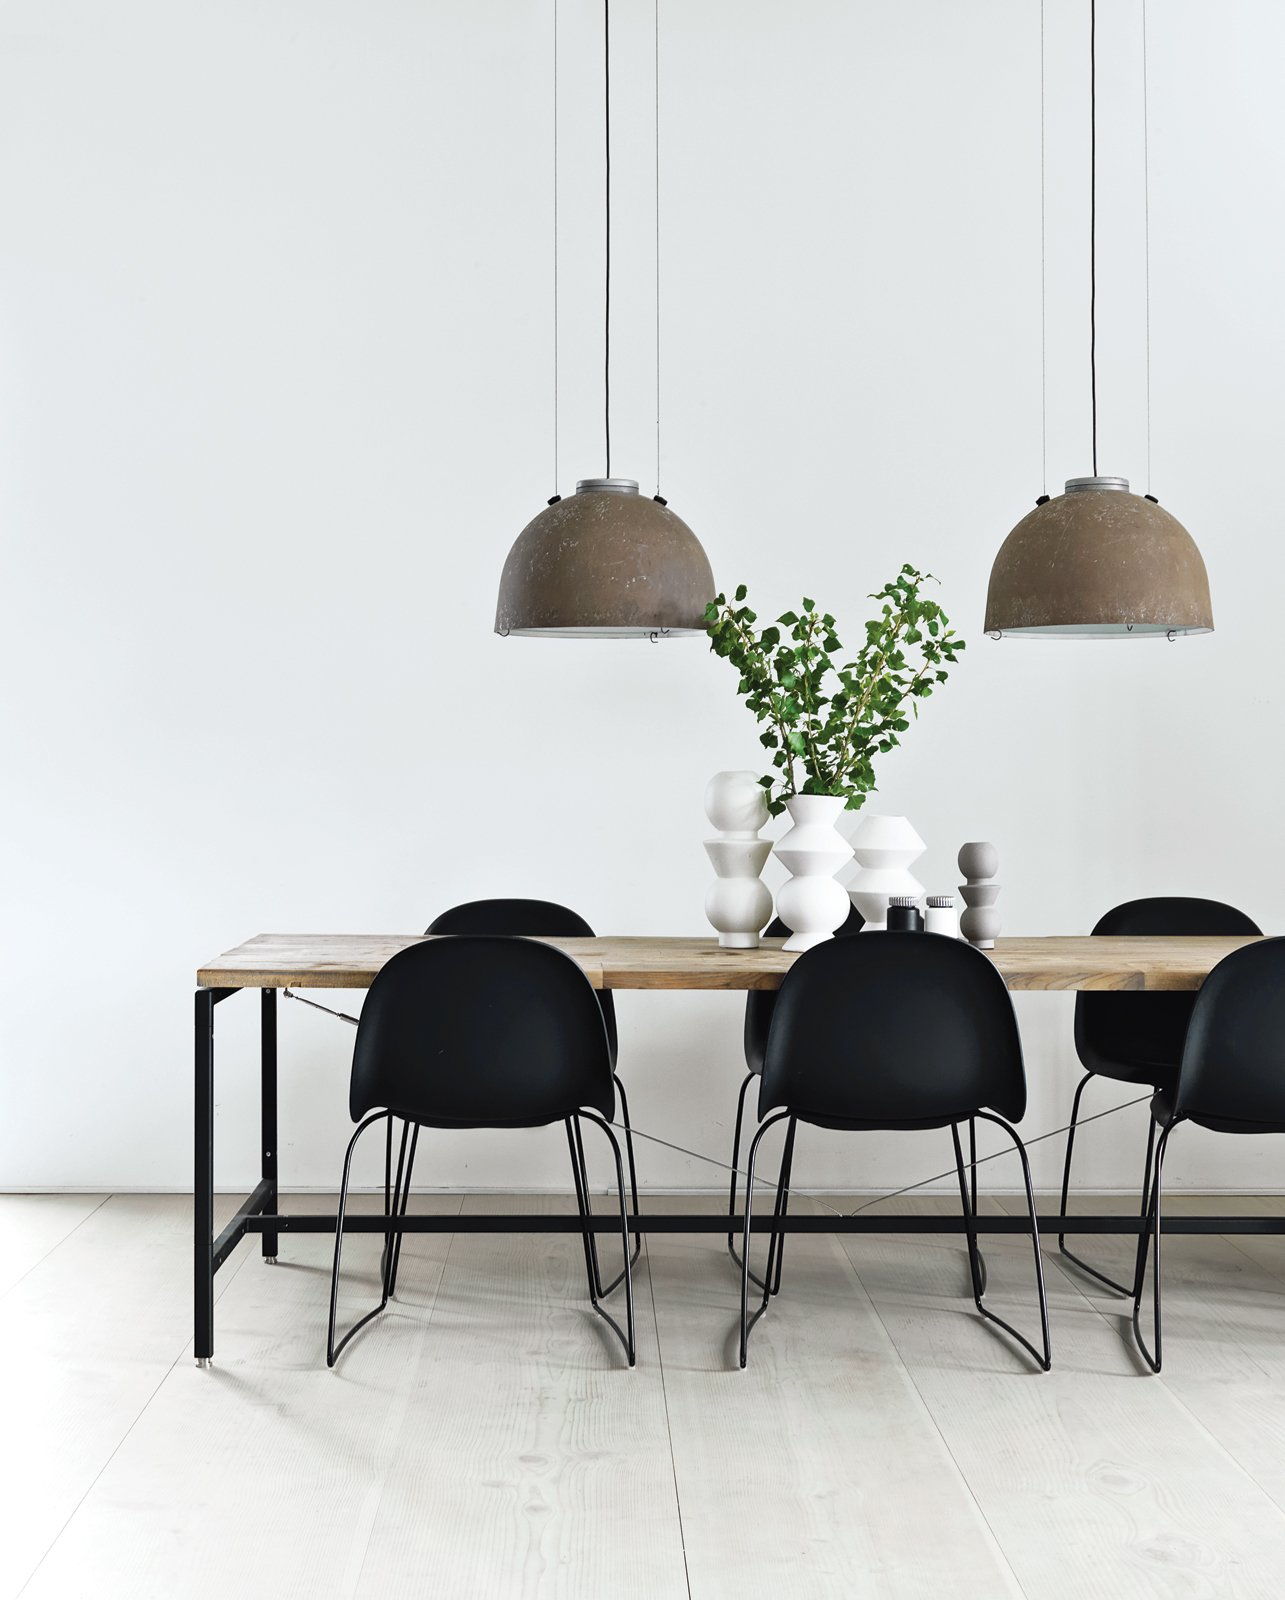 Morten Bo Jensen, of Danish industrial design company Vipp, and his partner, graphic designer Kristina May Olsen, have mixed repurposed vintage items with their own creations inside their Copenhagen apartment. In the kitchen, the dining table—Jensen's first piece for Vipp—is made of powder-coated aluminum frame with a recycled, untreated teak top. The lamps overheard are salvaged and rewired Copenhagen streetlights.  Photo 2 of 8 in Two Designers Sharpen Up This Former Pencil Factory